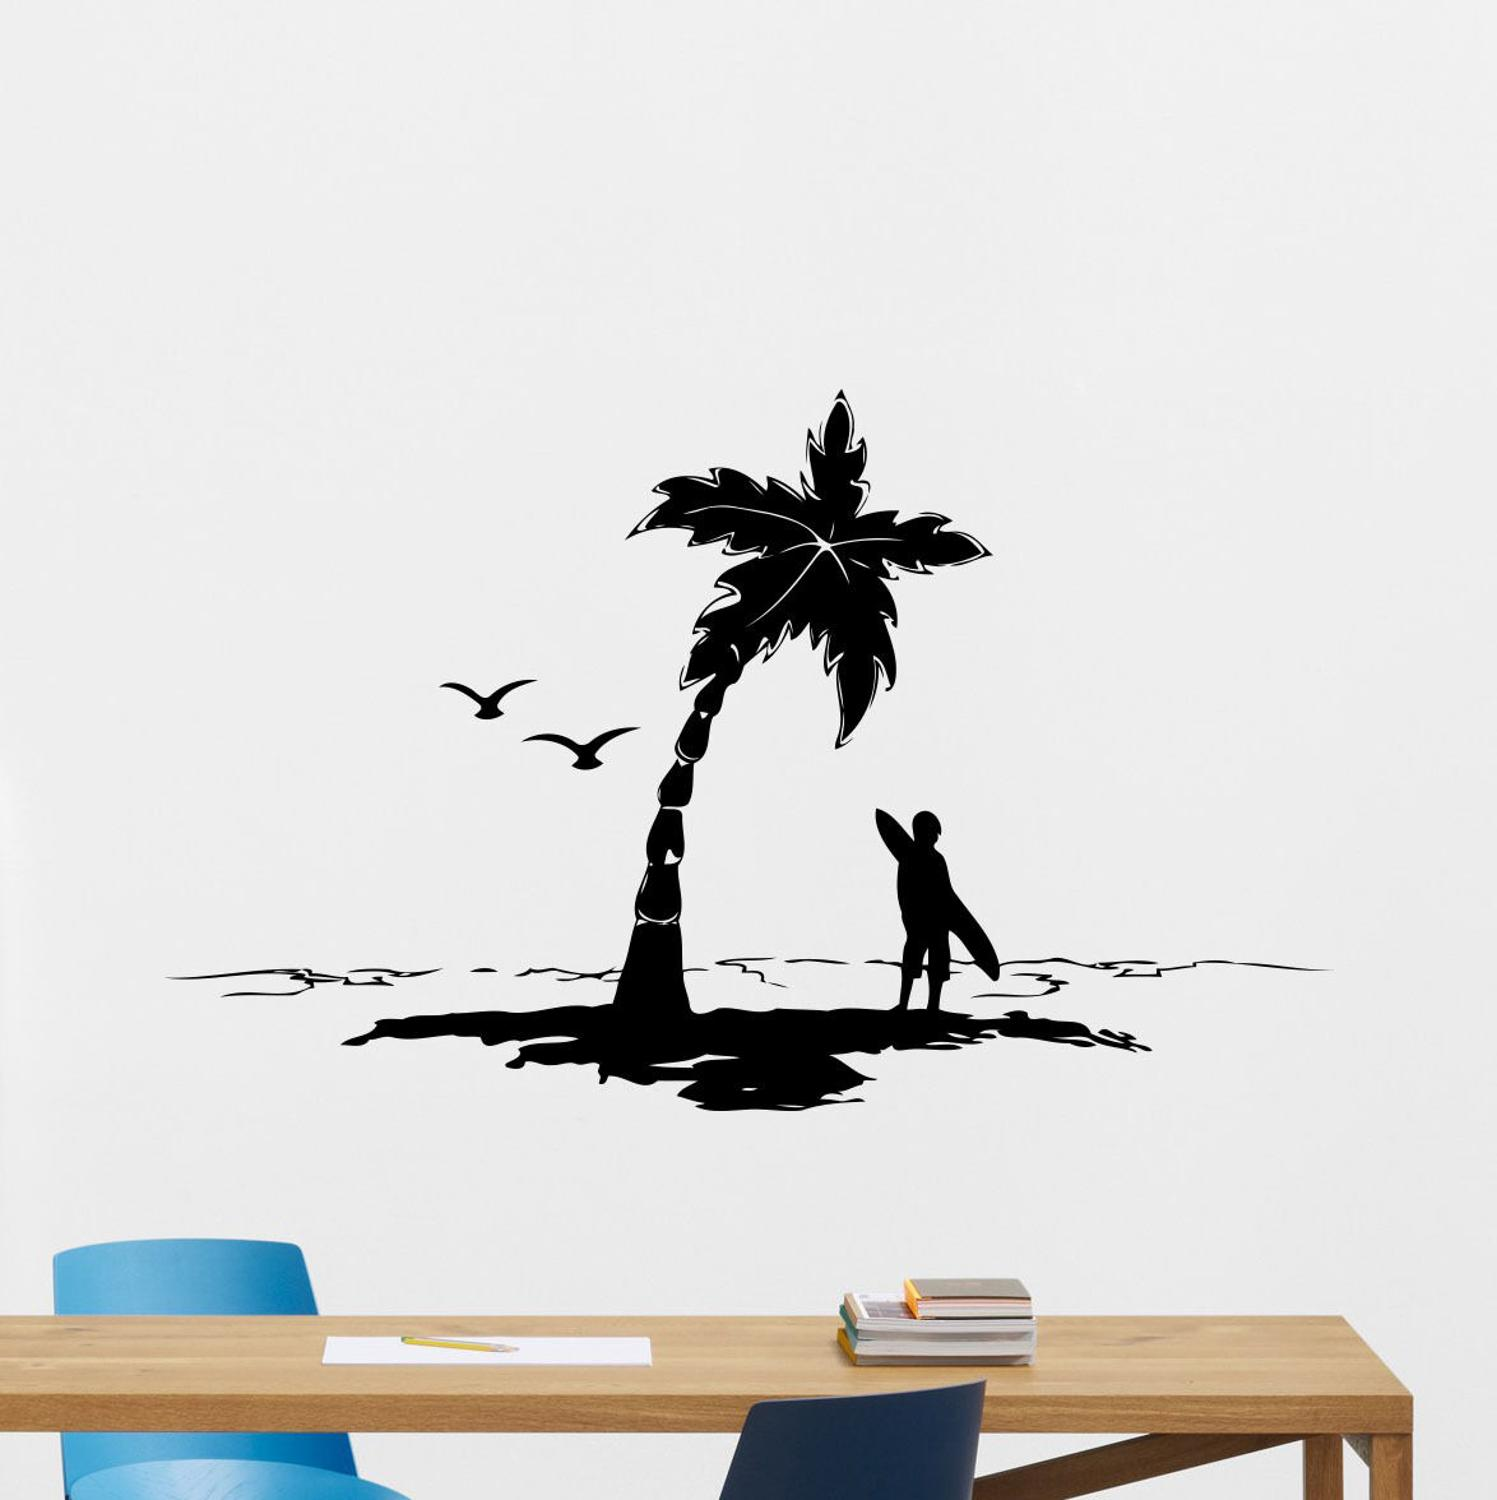 Tropical Fish Vinyl Removable Wall Sticker Decal Home Room Decor-Art